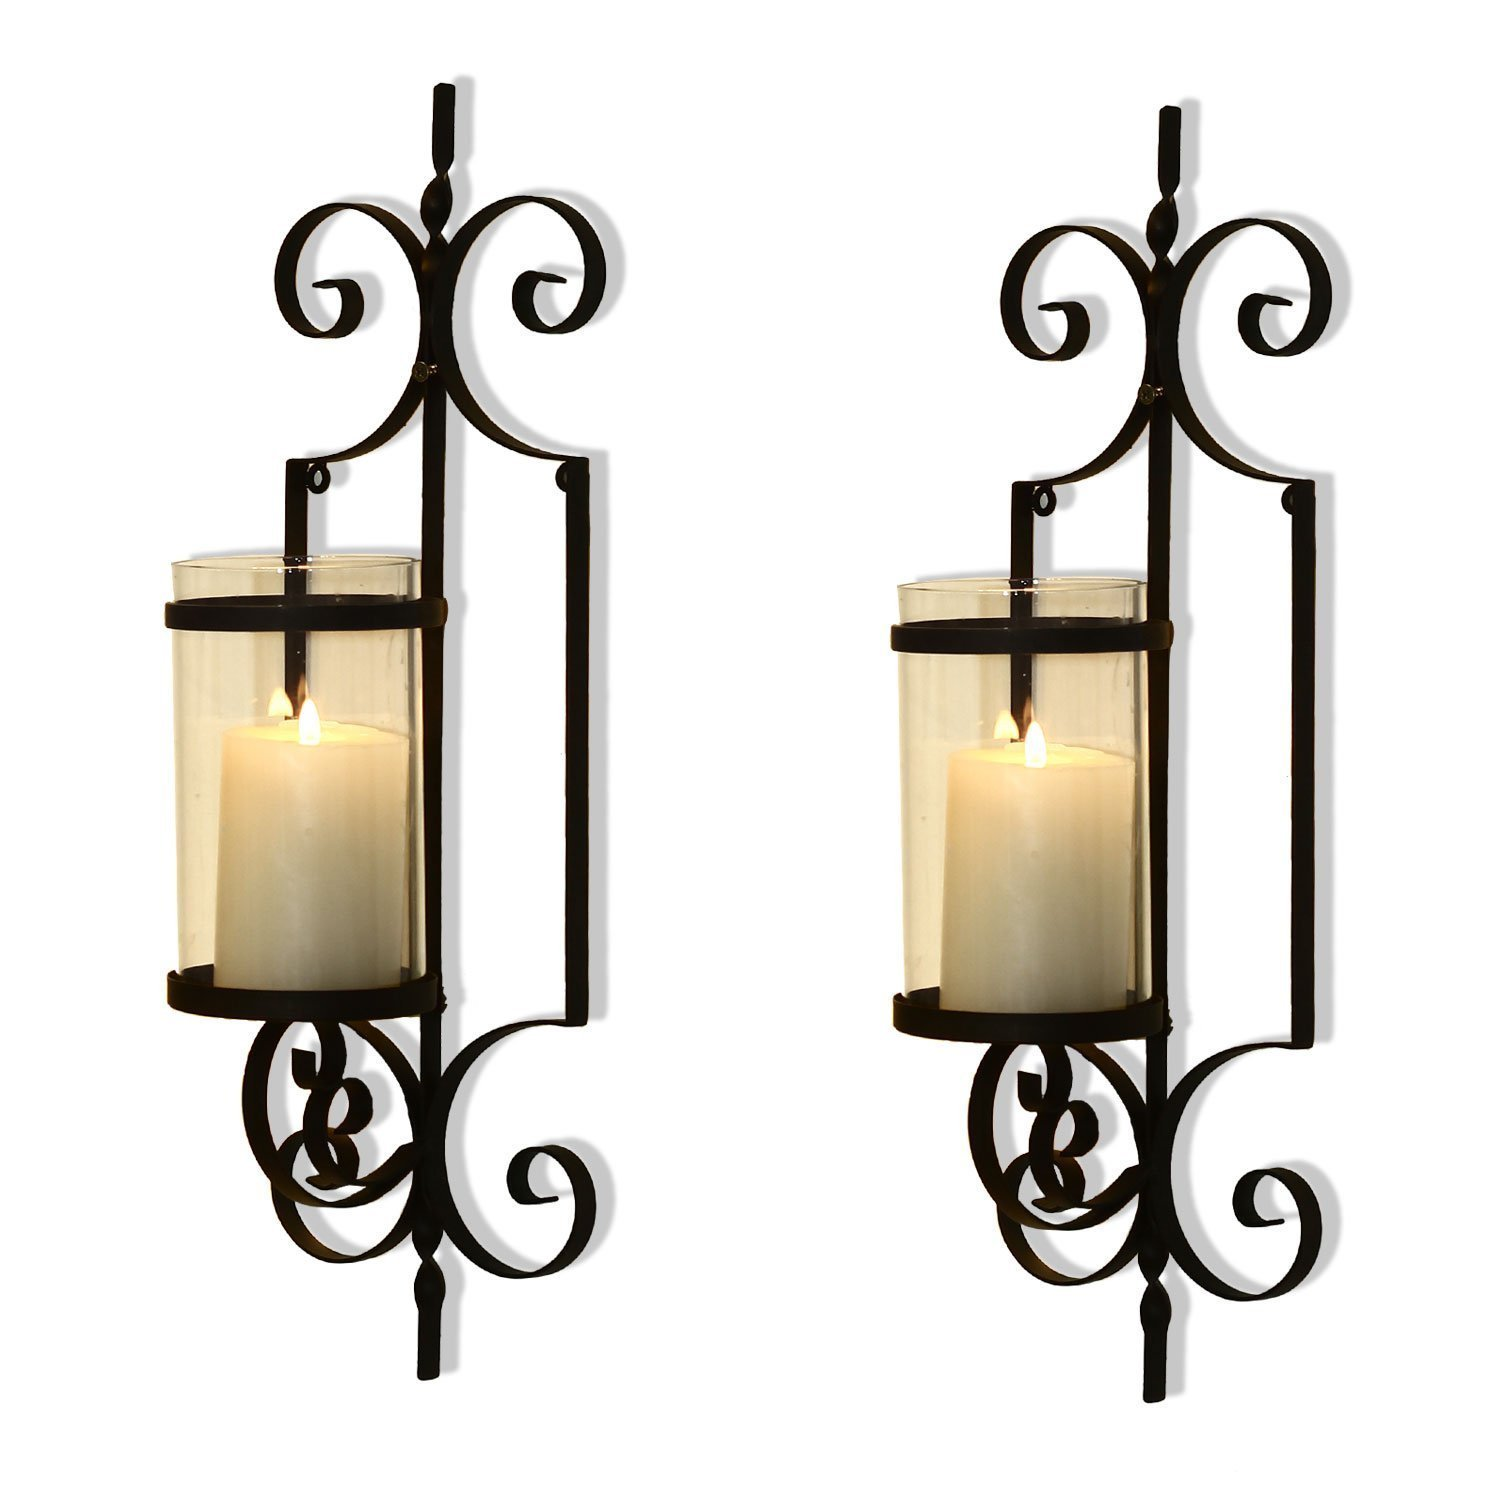 Adeco Cast Iron Vertical Wall Hanging Accents Candle Hold...